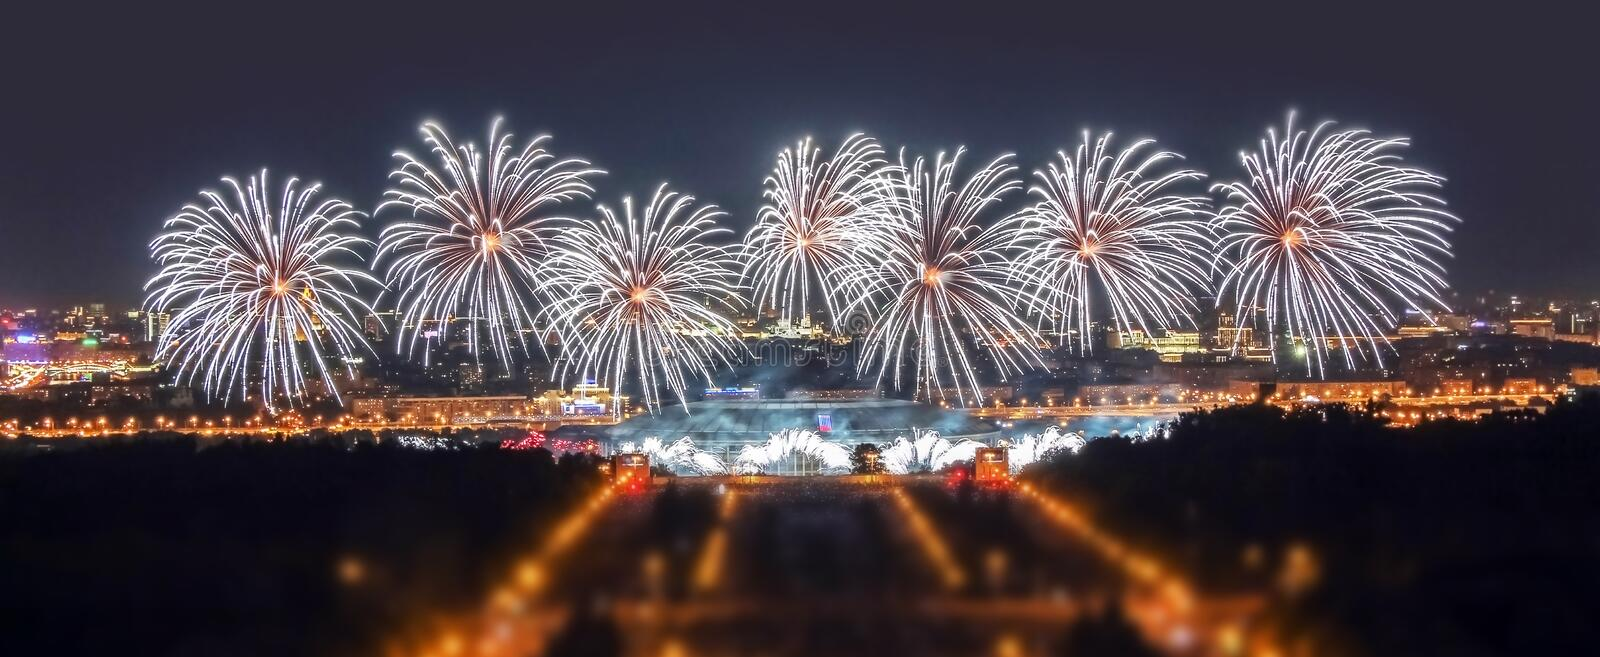 Soften edge view of Moscow firework festival in the Lenin Hills area with thousands of smart phone flashes and water reflections. Wide angle soften edge view of royalty free stock photo